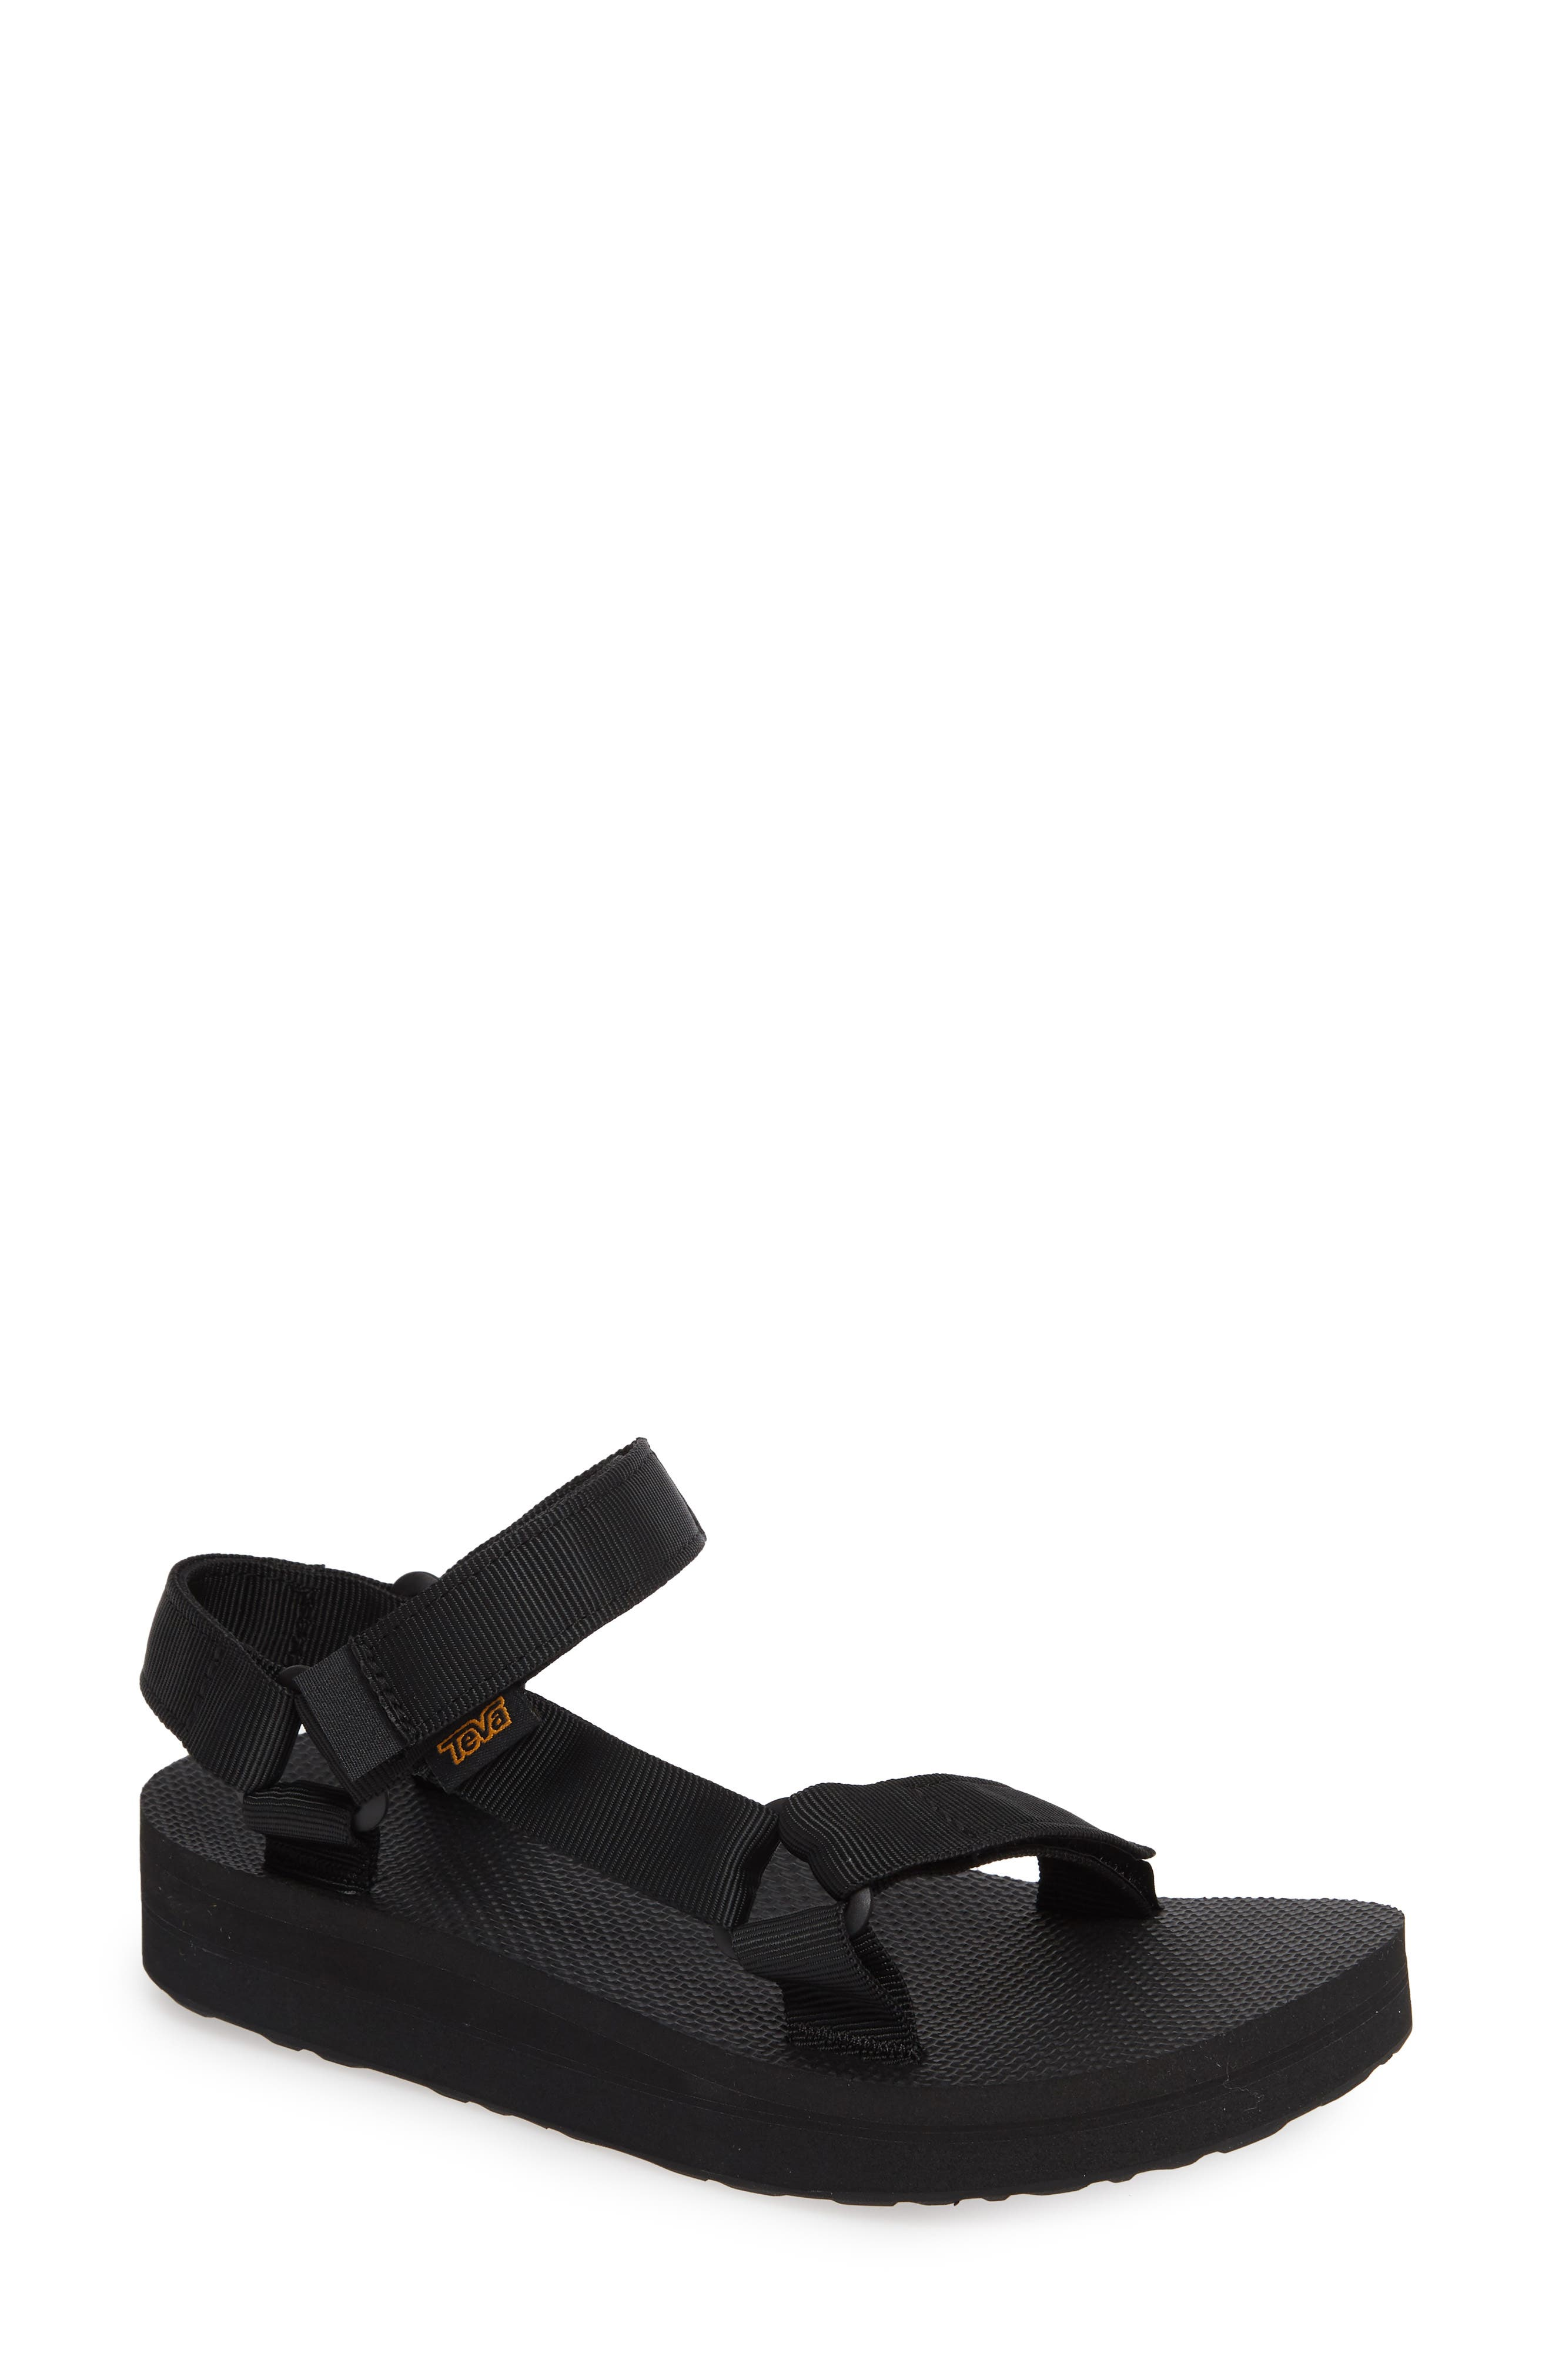 Midform Universal Geometric Sandal,                             Main thumbnail 1, color,                             BLACK FABRIC